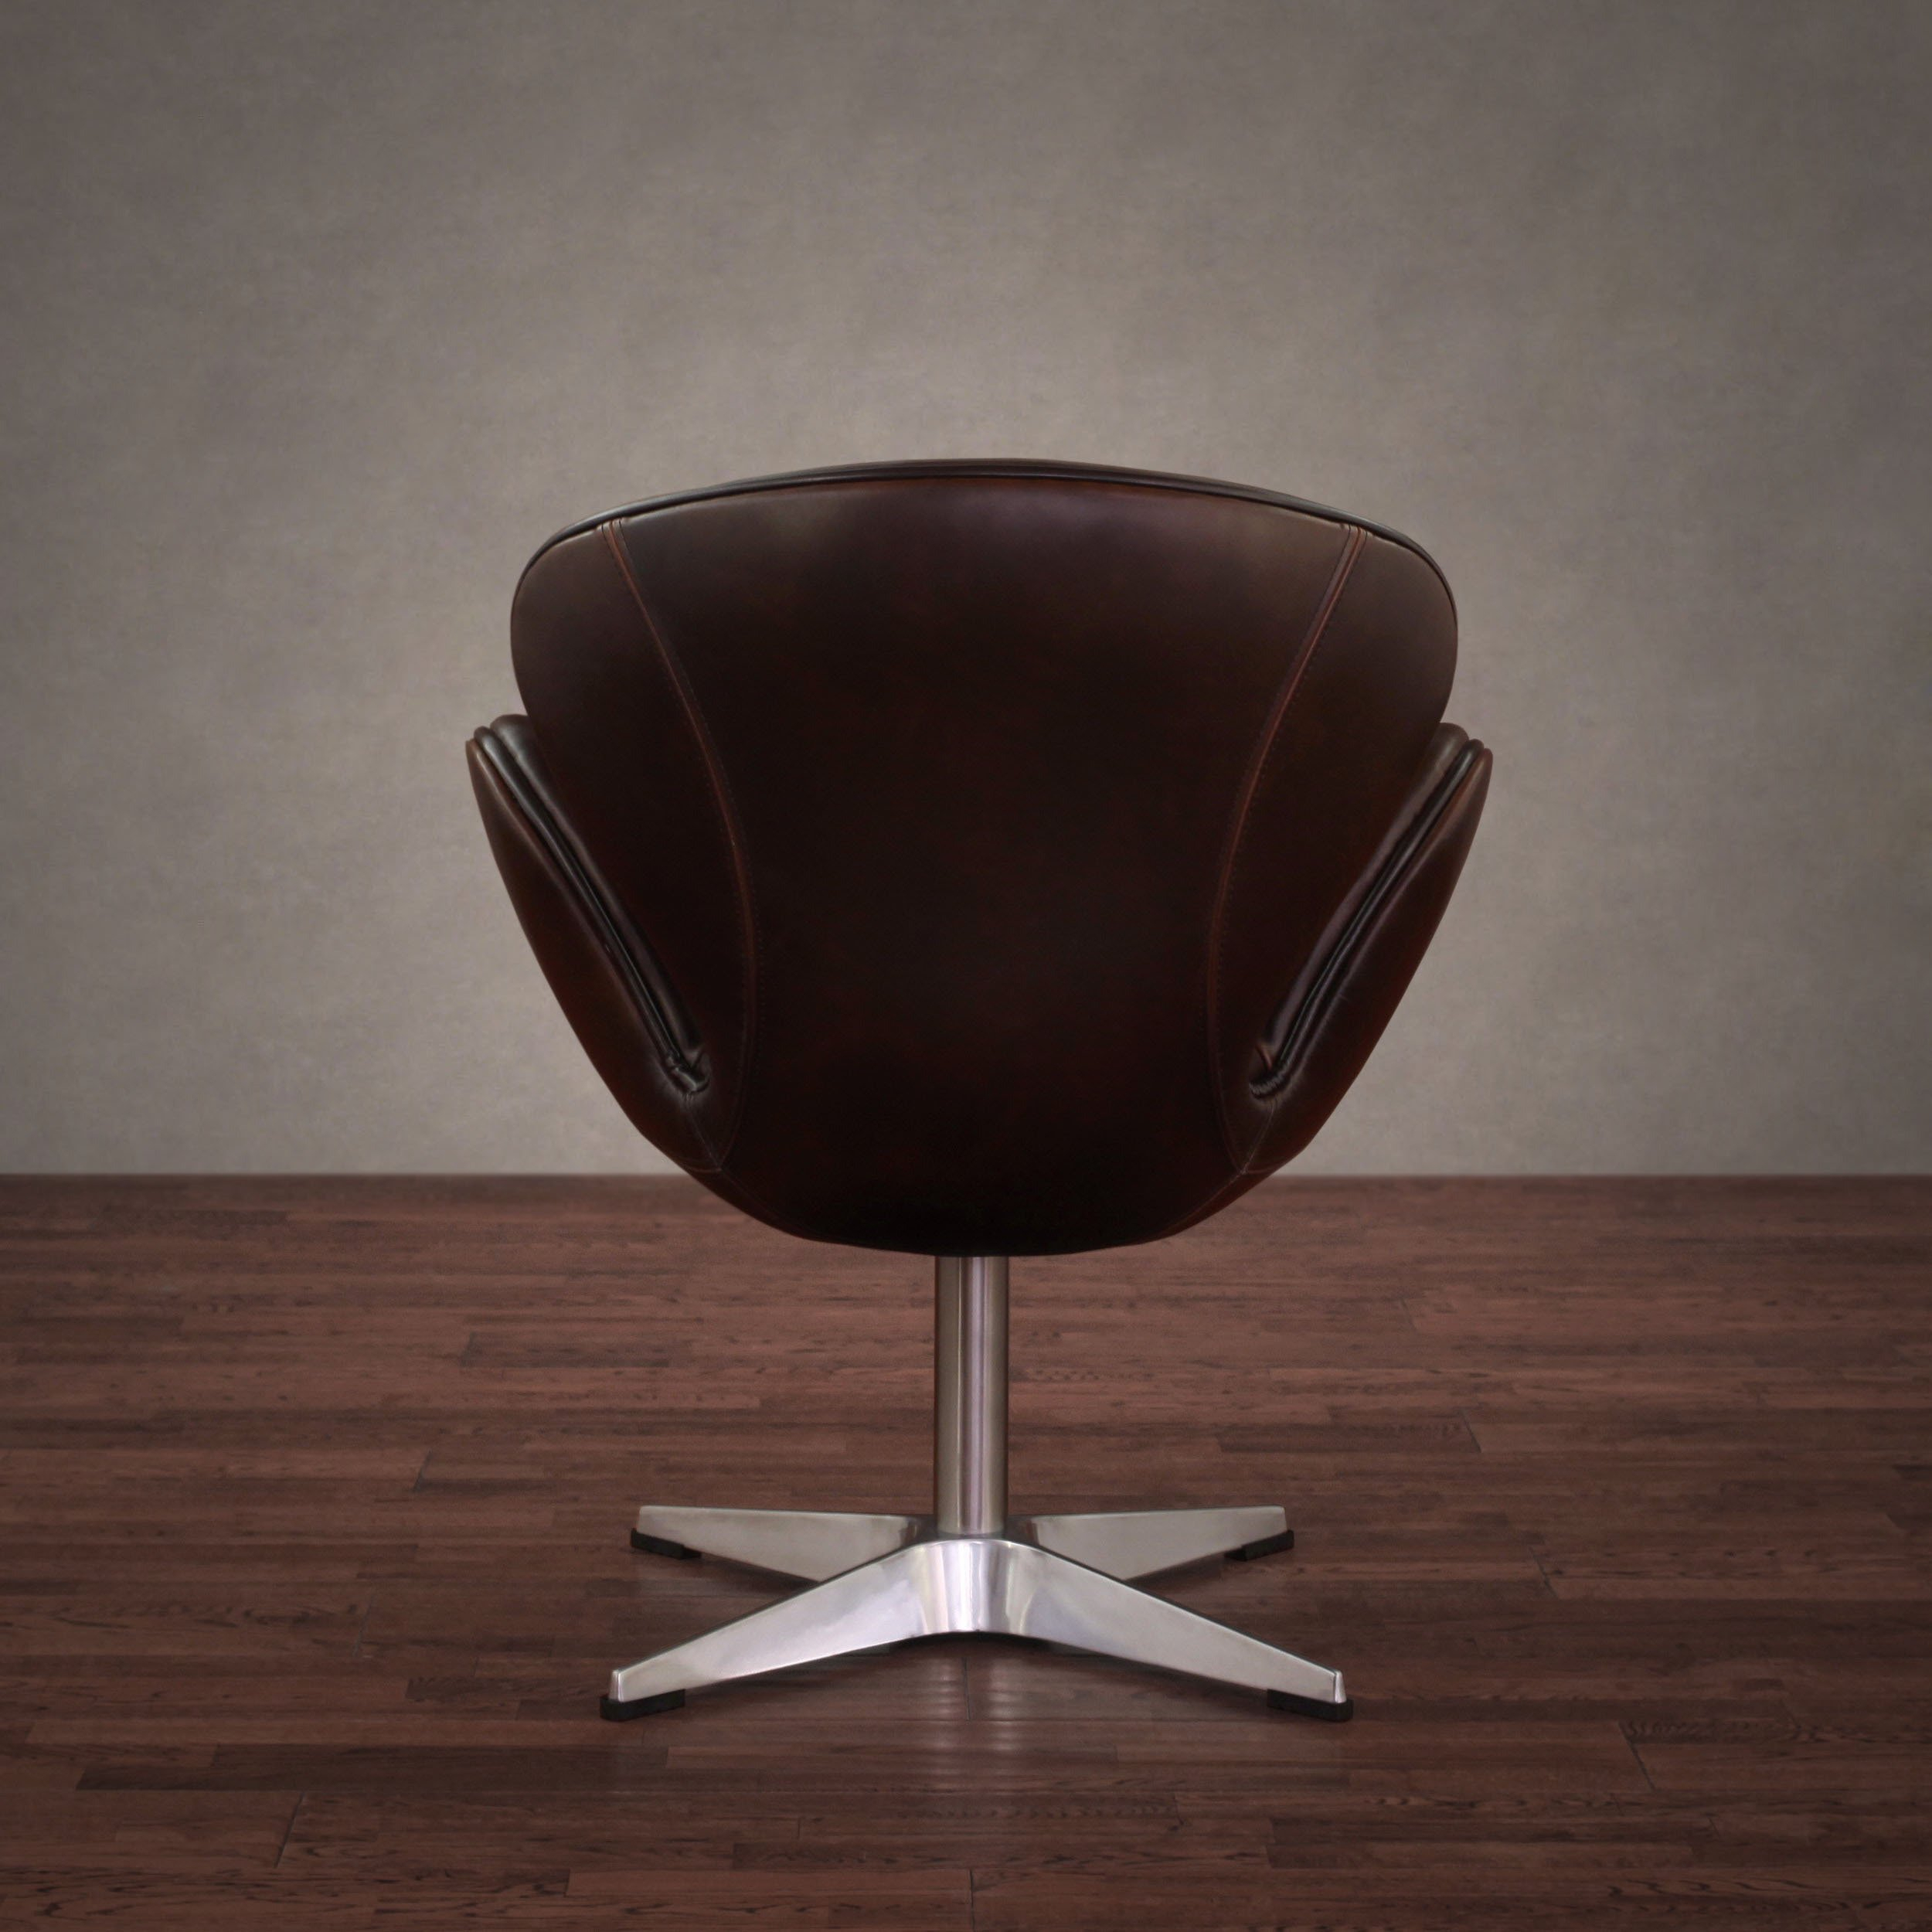 Shop Amelia Vintage Tobacco Leather Swivel Chair – Free Shipping Throughout Swivel Tobacco Leather Chairs (View 6 of 25)